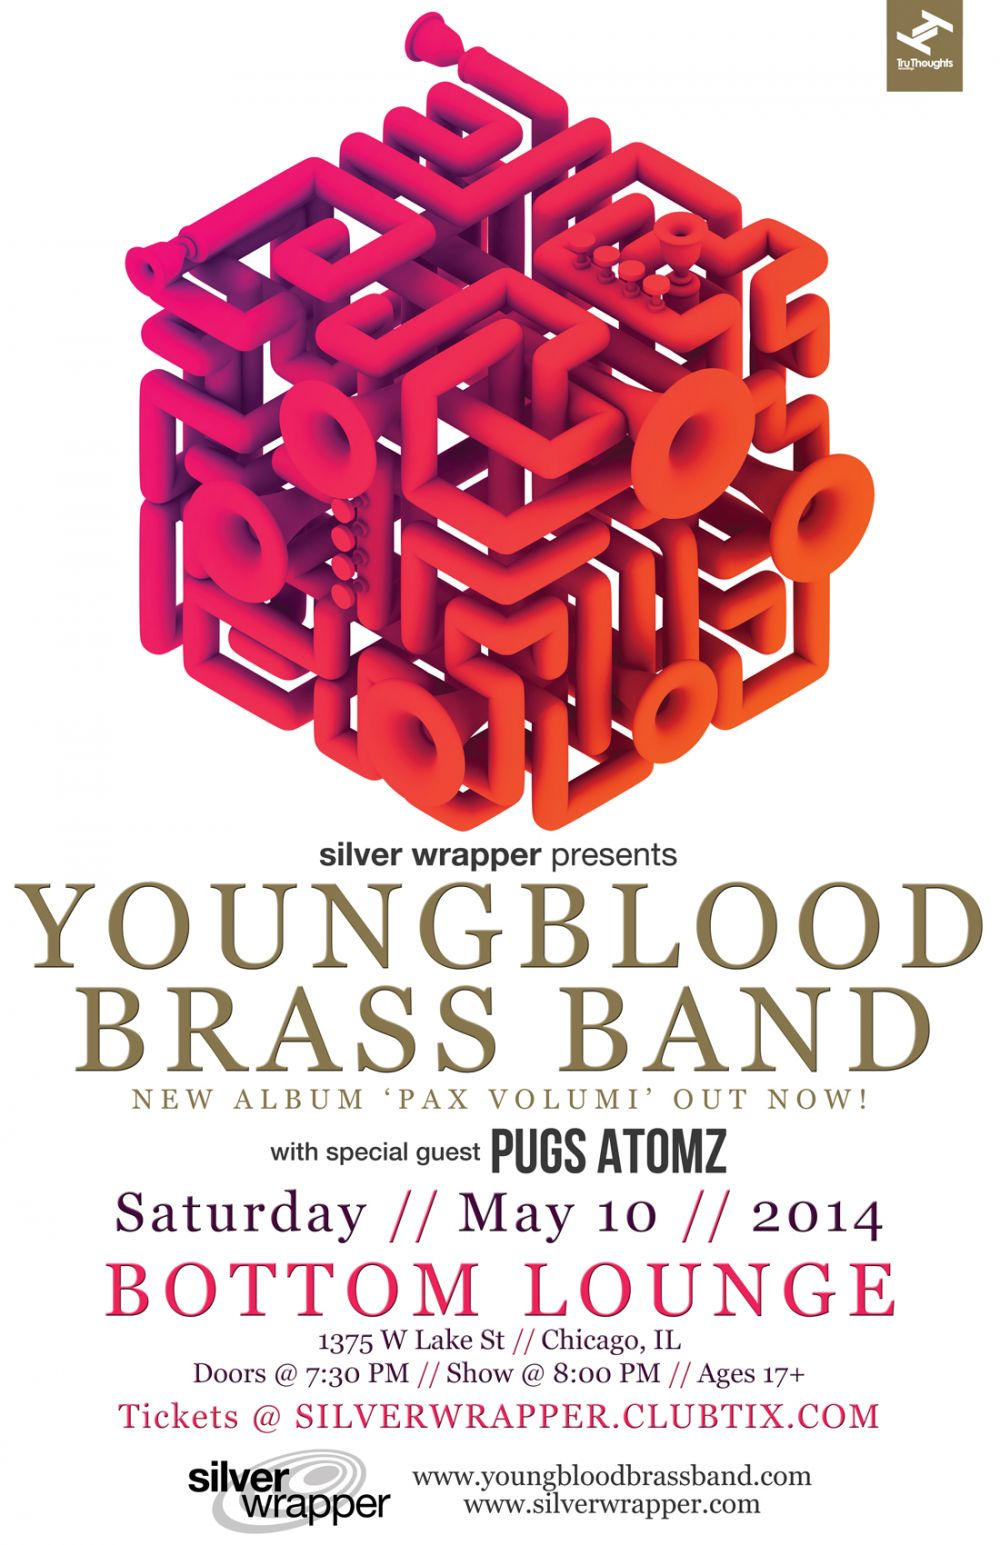 YOUNGBLOOD BRASS BAND * PUGS ATOMZ